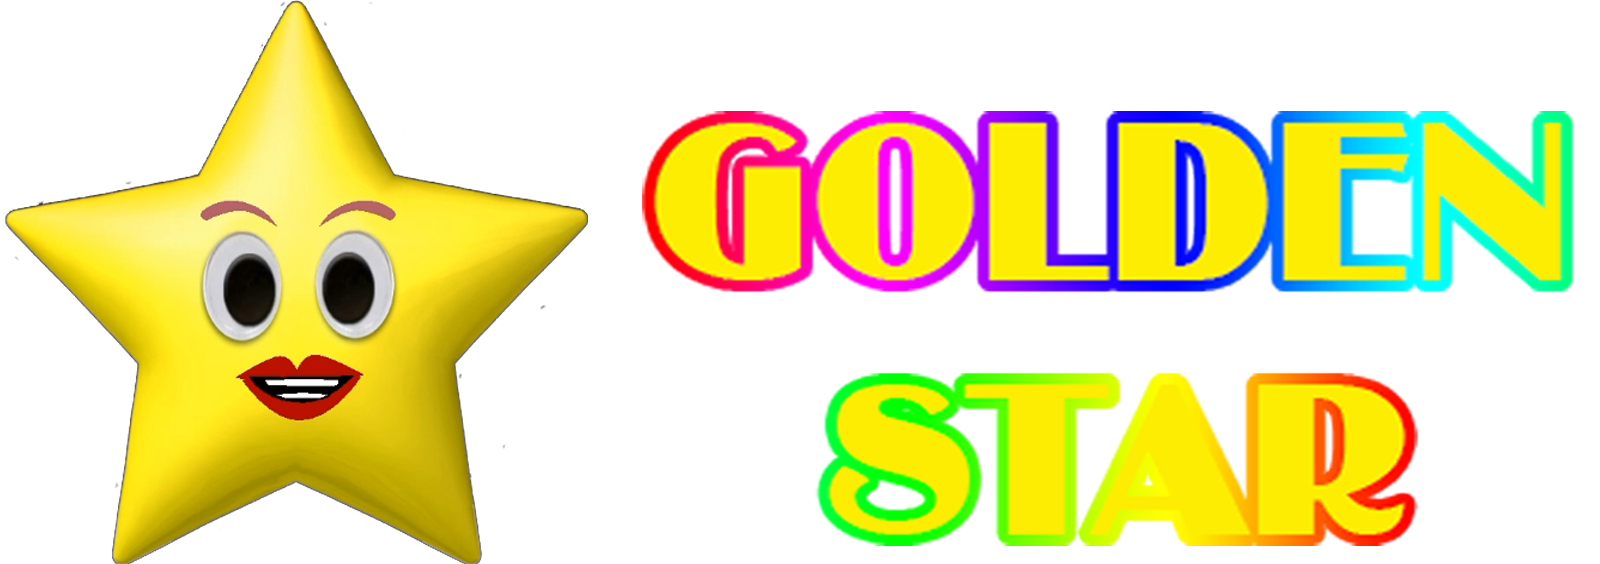 Golden Star Game | Game Mobile | Game PC | Software |  Pes, Fifa 2018, 2019